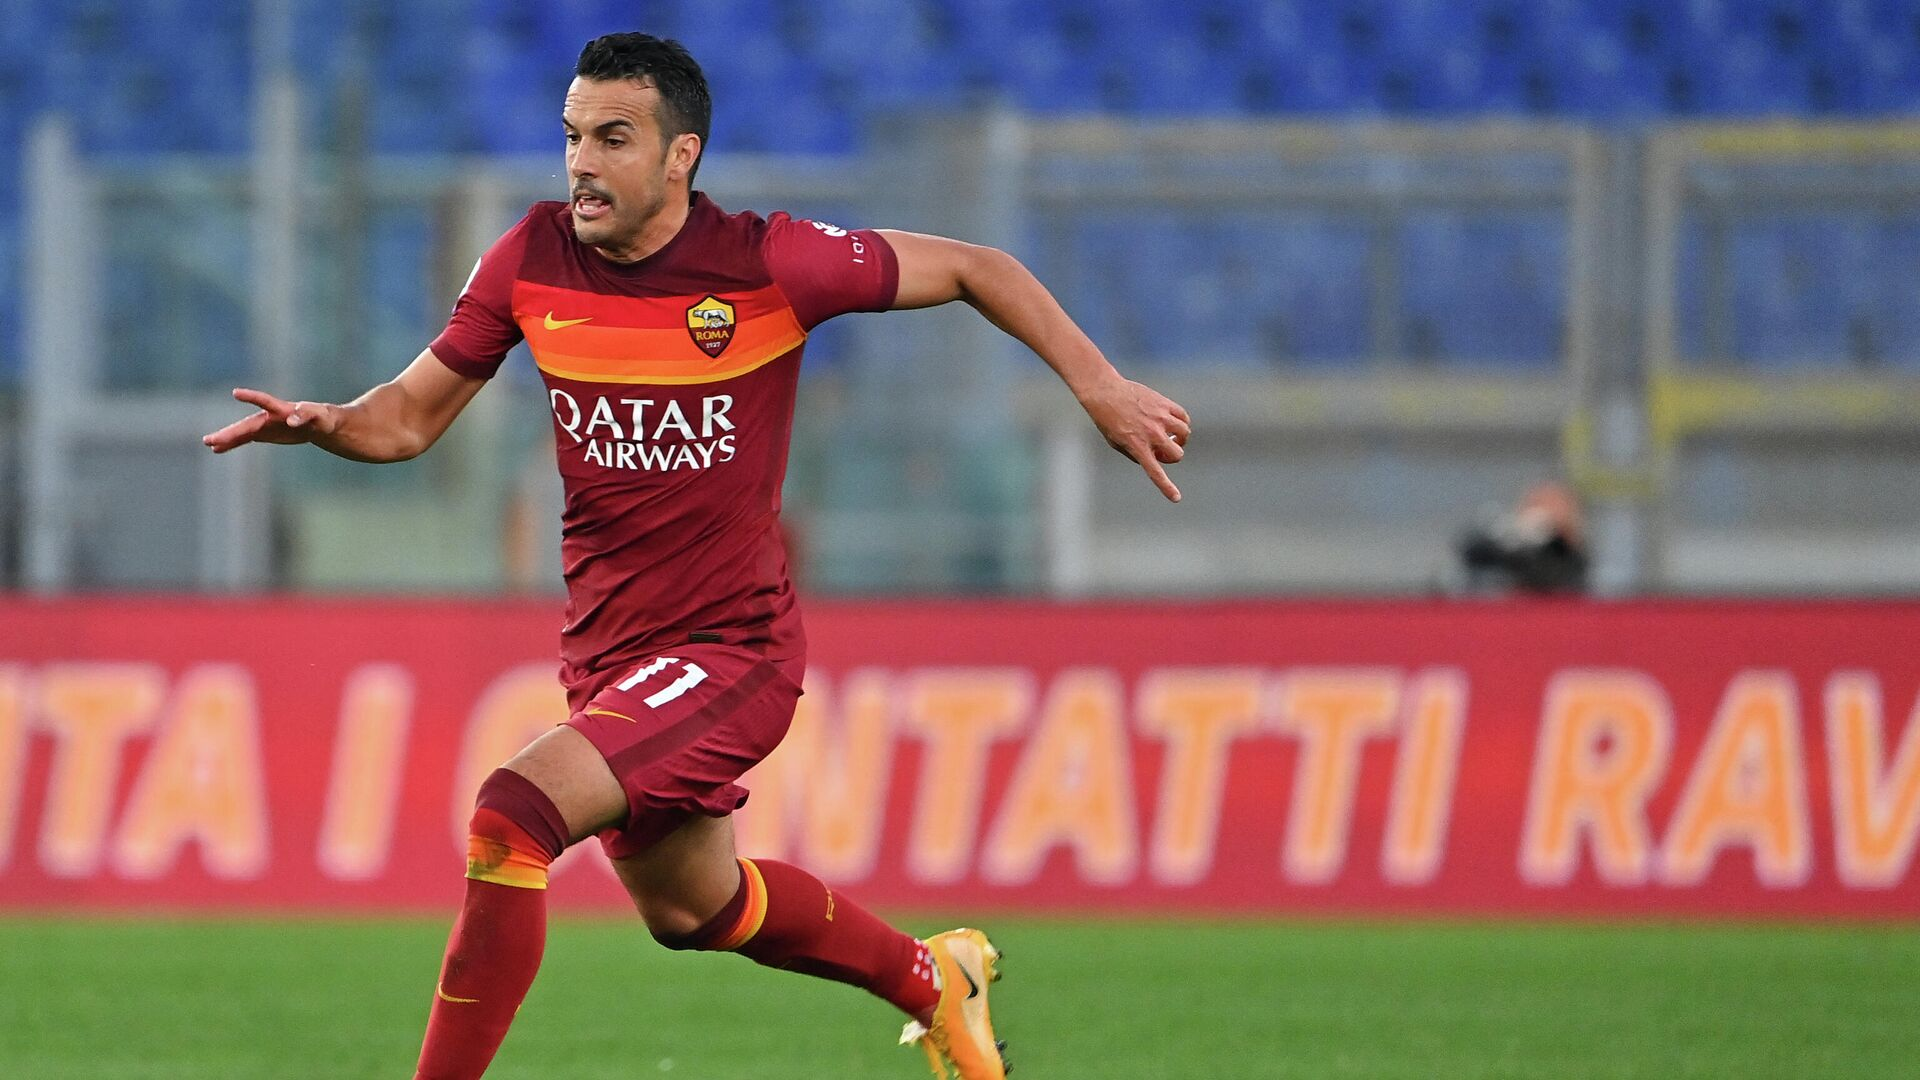 Roma's Spanish forward Pedro runs with the ball during the Italian Serie A football match AS Rome vs Bologna on April 11, 2021 at the Olympic stadium in Rome. (Photo by ANDREAS SOLARO / AFP) - РИА Новости, 1920, 03.08.2021